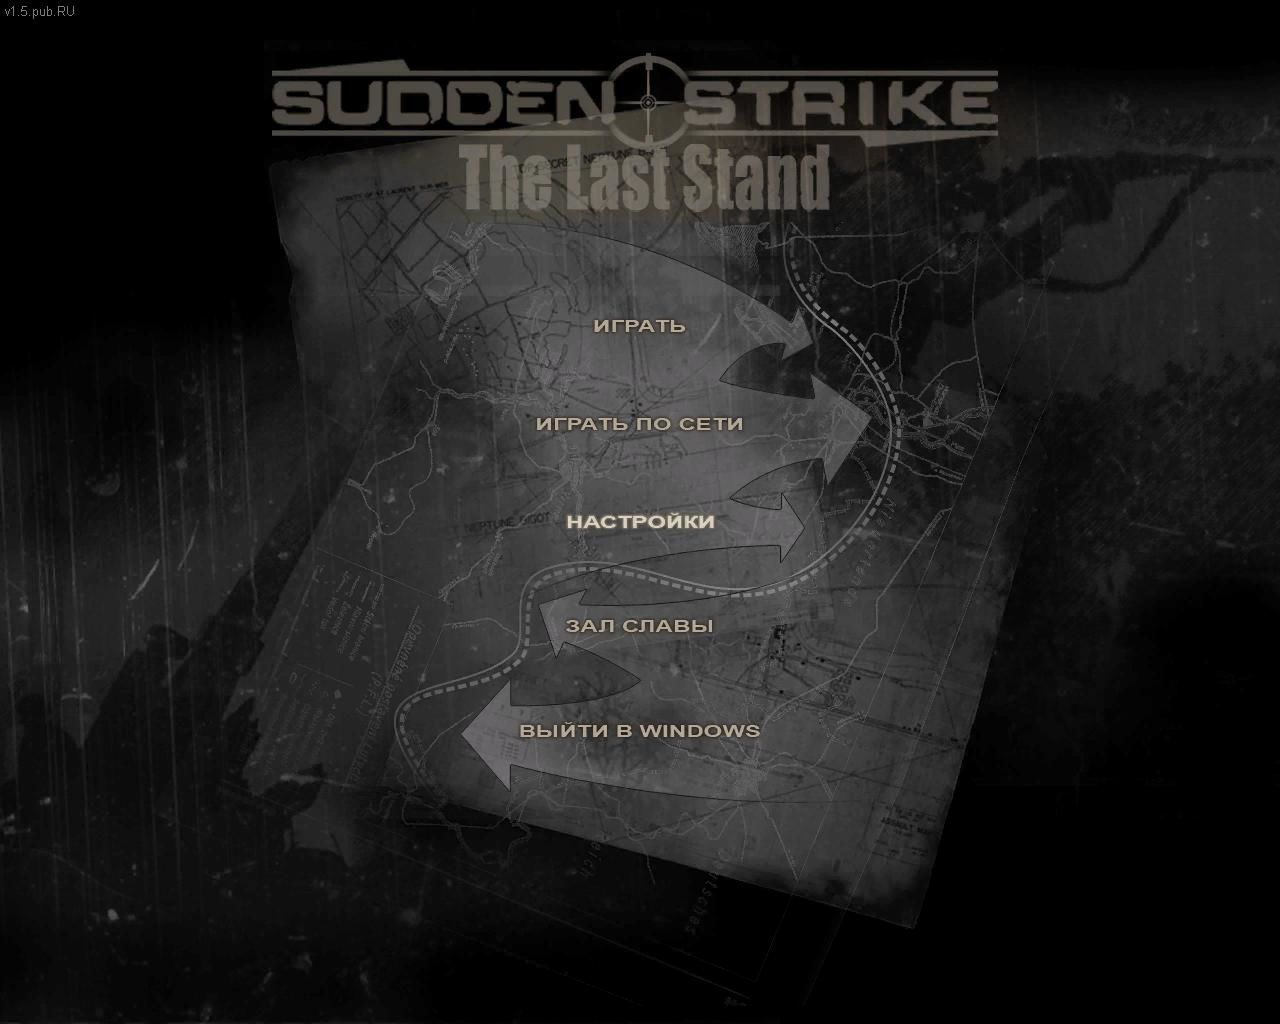 https://www.mobygames.com/images/shots/l/757201-sudden-strike-3-the-last-stand-windows-screenshot-main-screen.jpg